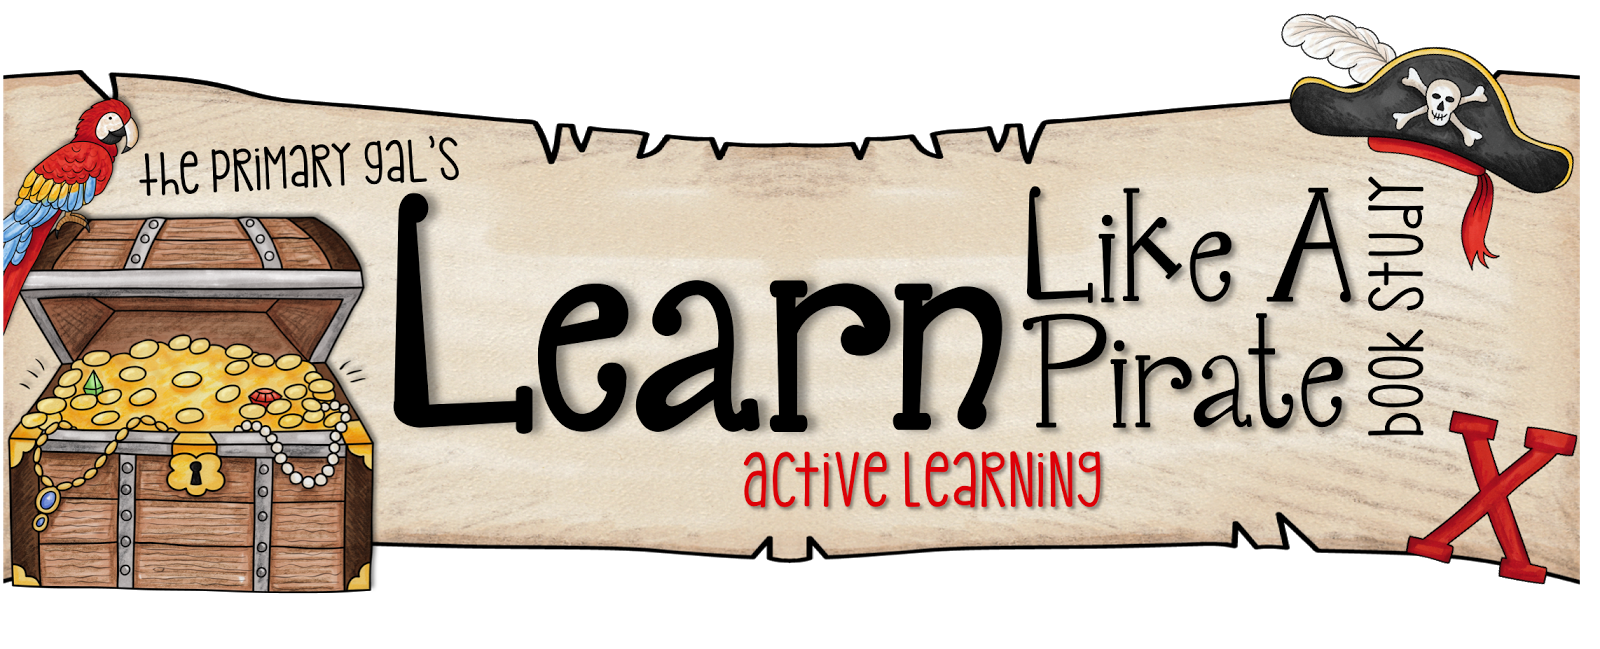 Pirate clipart banner. Live laugh love second